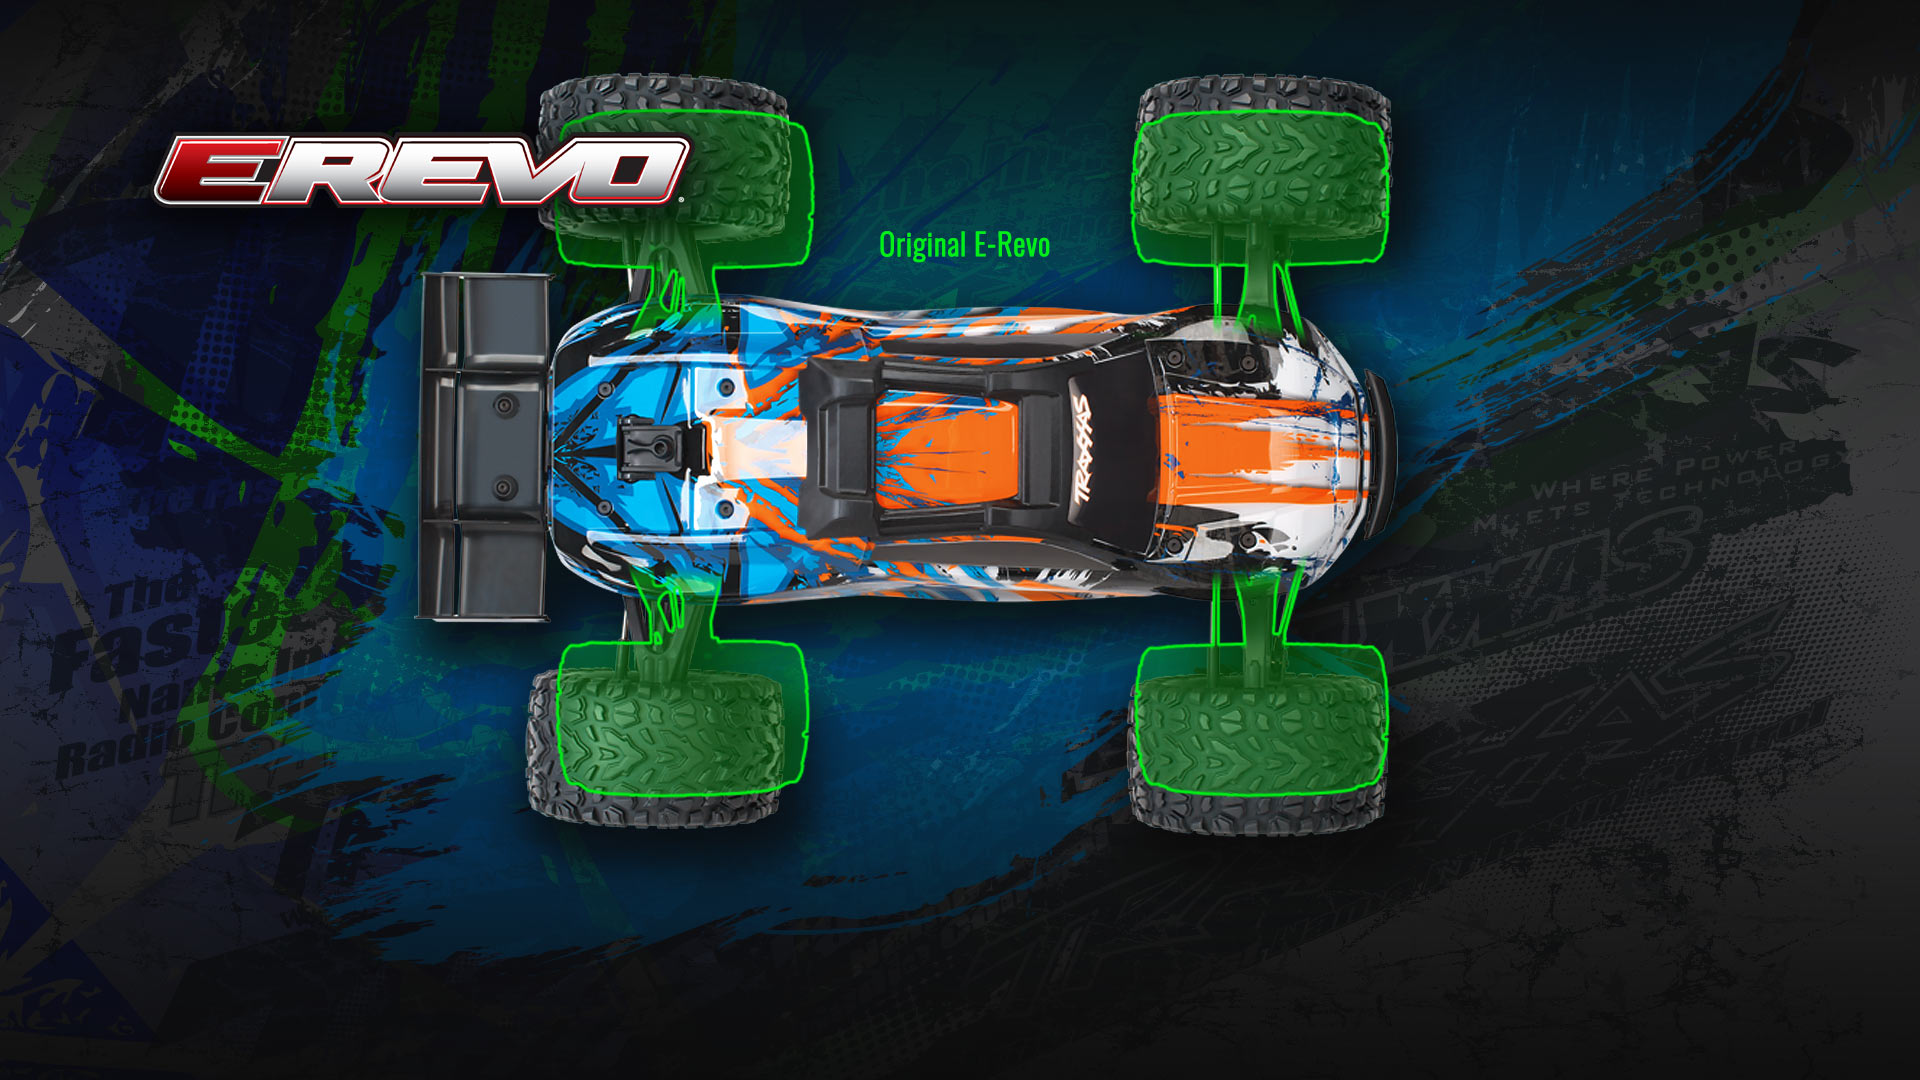 http://rc6.ru/images/upload/E-revo-overview-new-stance.jpg